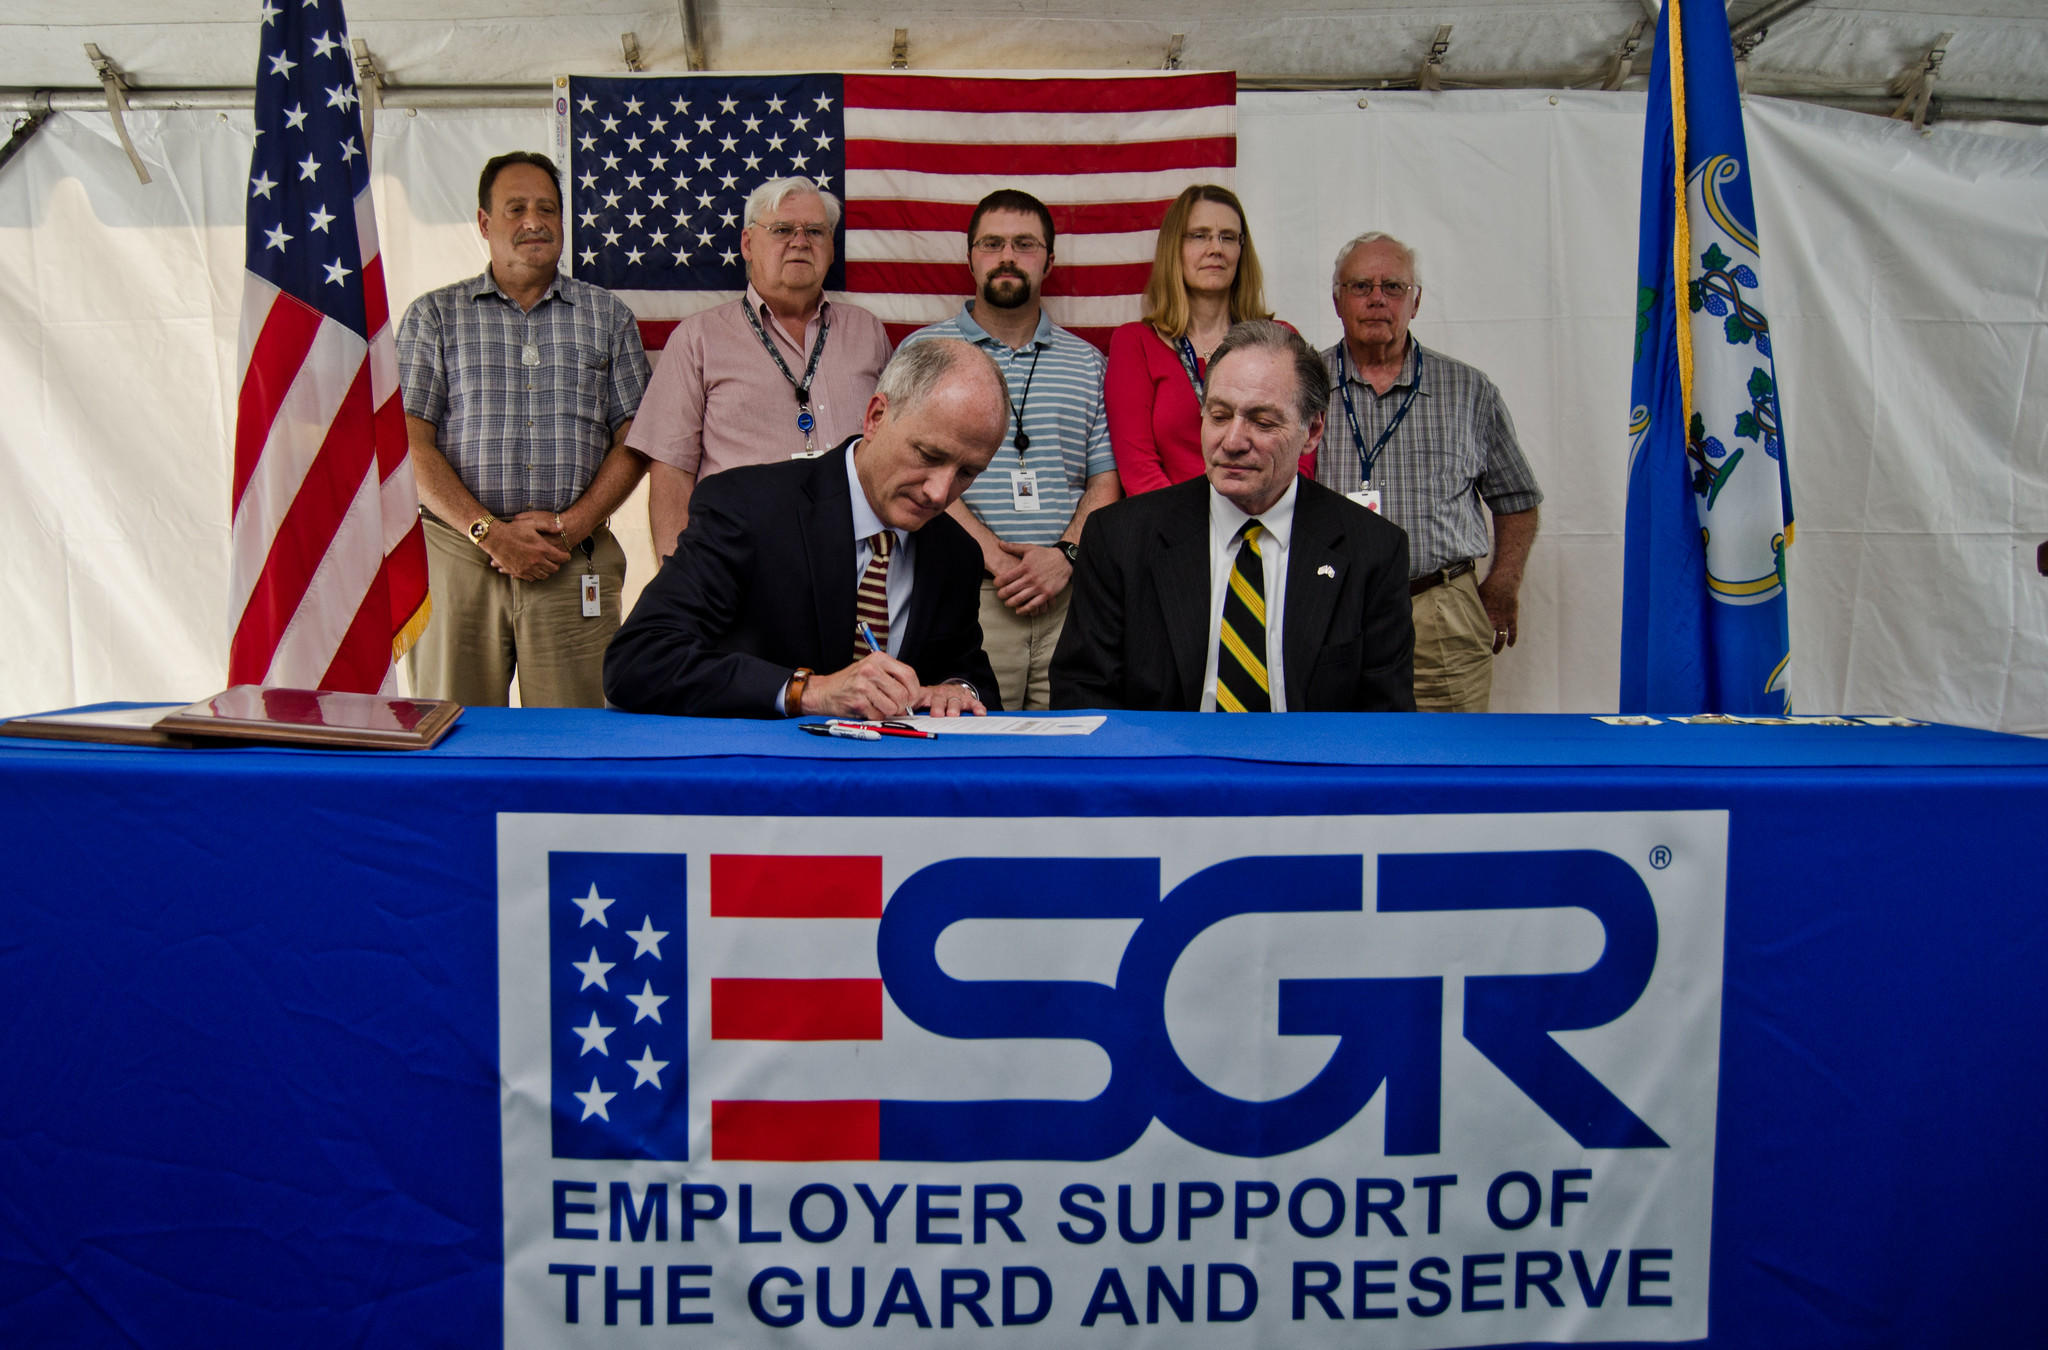 Kaman CEO Neal Keating signs a support statement the Pentagon's Employer Support for the Guard and Reserve program, seated next to the program's local official, Ted C. Graziani. Behind them stand Kaman employees who, as veterans, have served in different branches of the military: (from left) Joe Mazza, Air Force; Bill Houlberg, Army; Kyle Korab, Navy; Valerie Johnson, Marines; Joe St. Jean, Coast Guard.